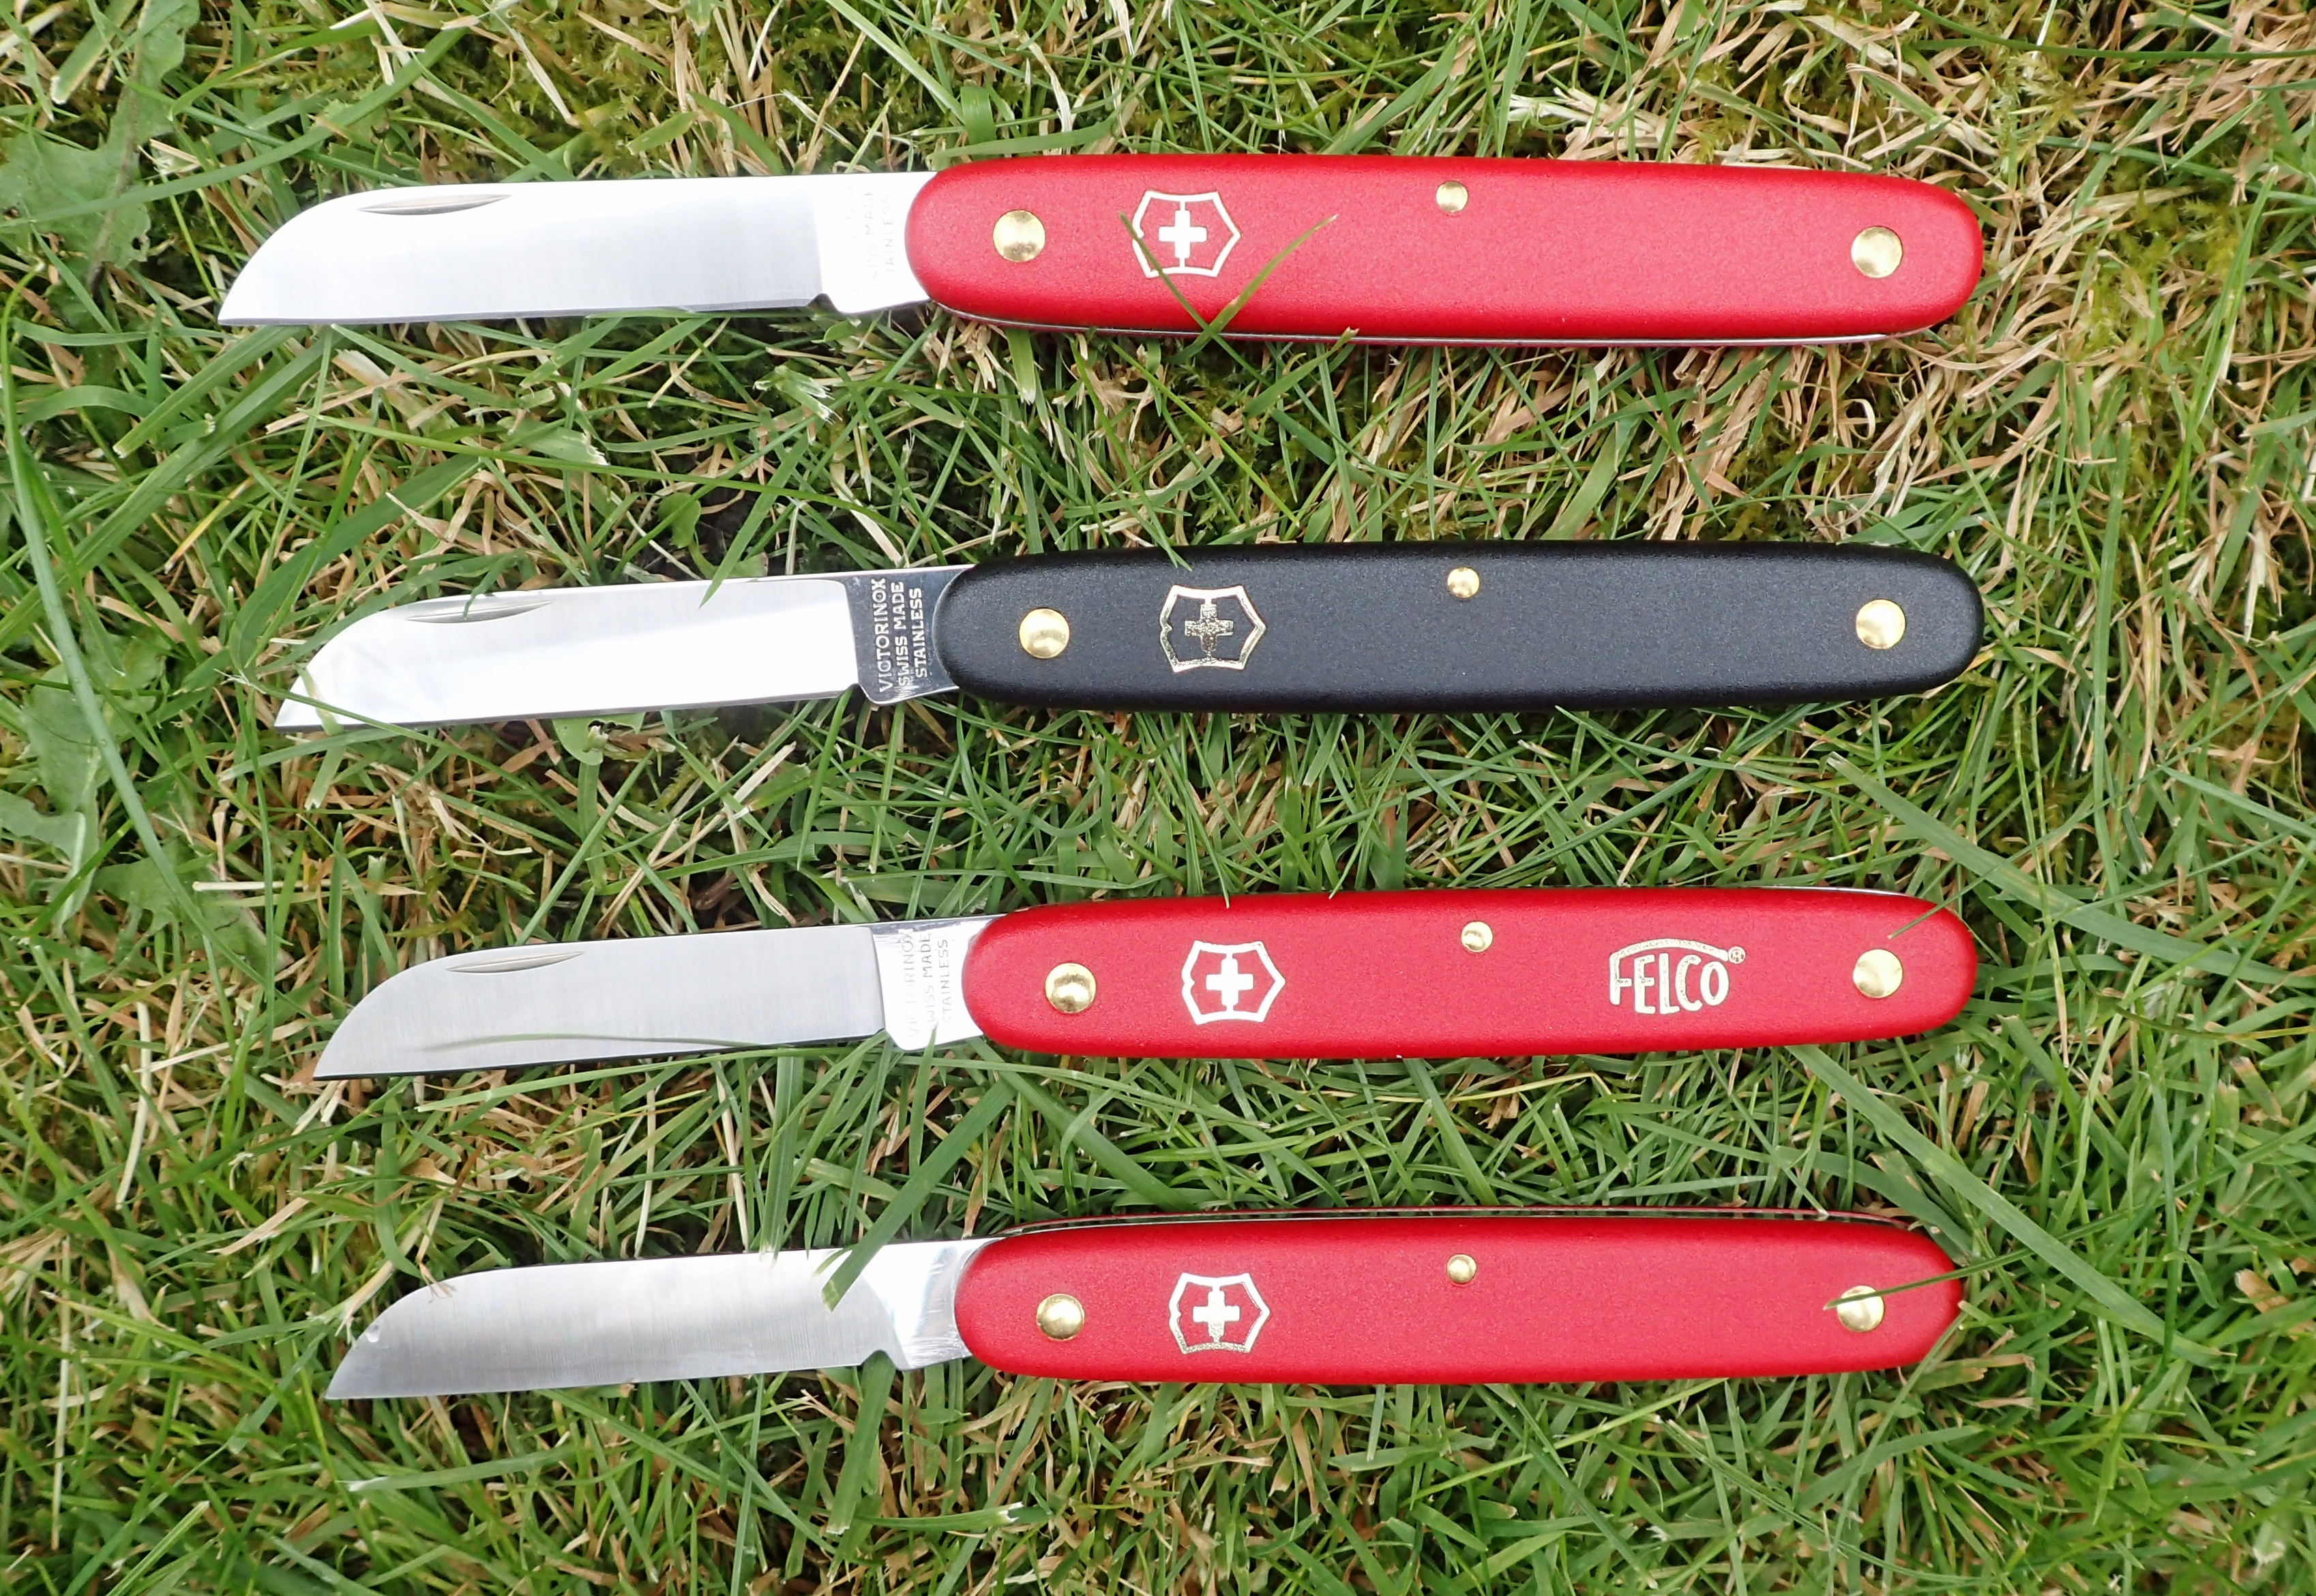 Four variants on the standard horticultural knife from Victorinox, here we have differences in handle colour, branding and a version for left-handers